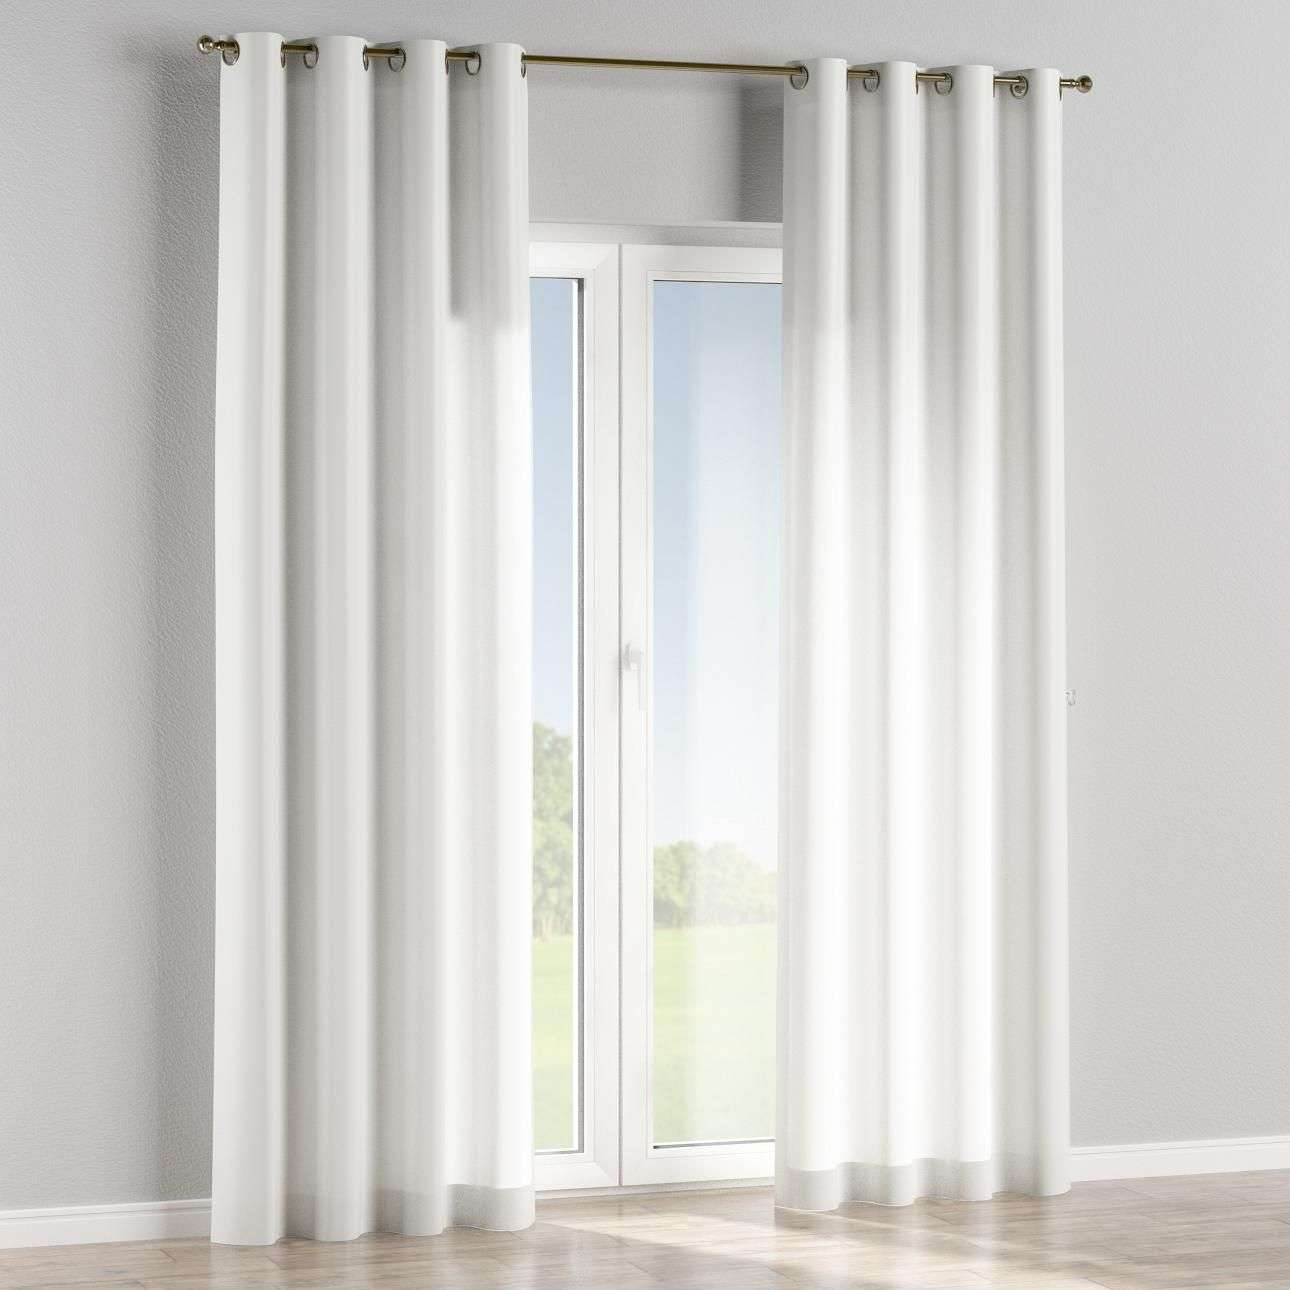 Eyelet lined curtains in collection Marina, fabric: 140-15